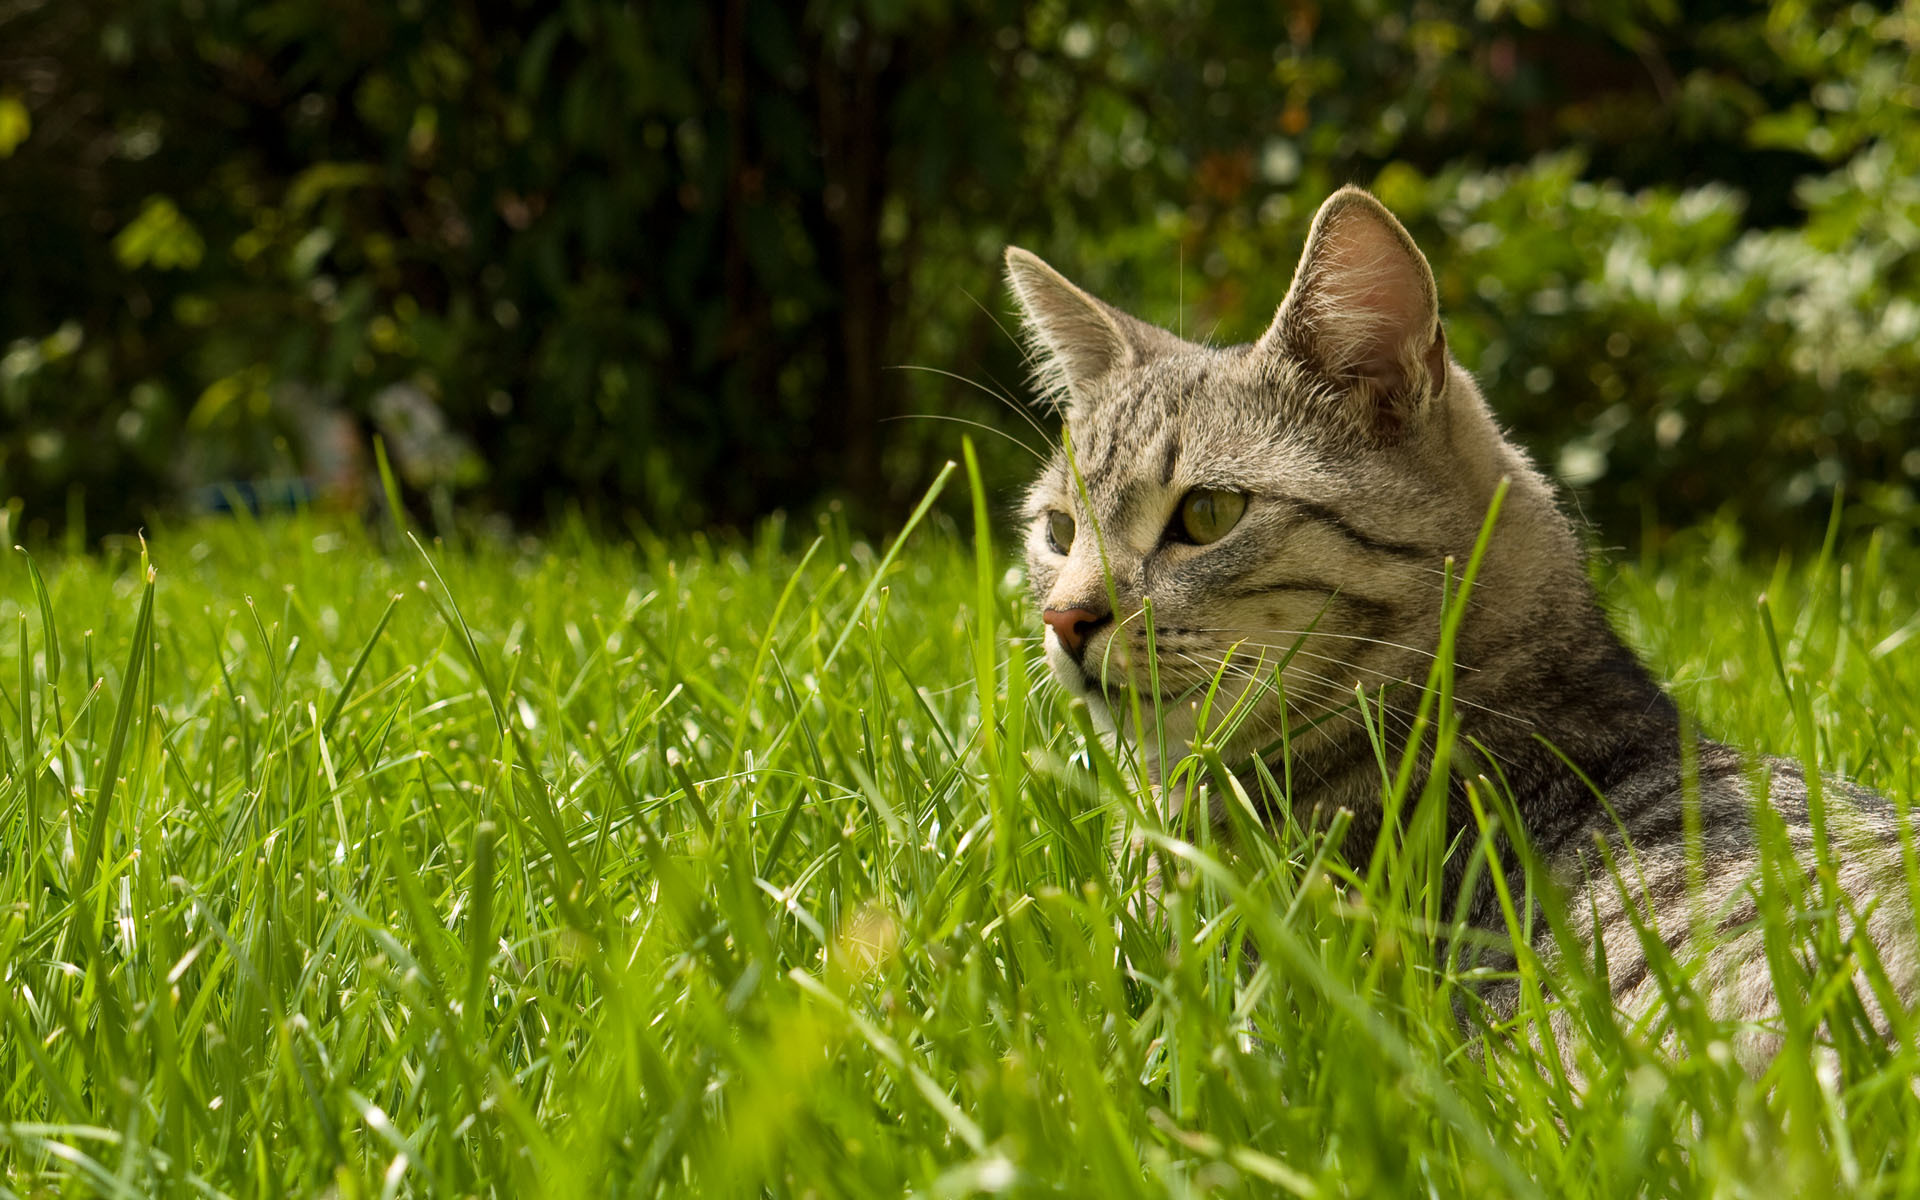 Cute Lovable Couple Wallpapers Find The Cat In The Grass Wallpapers And Images